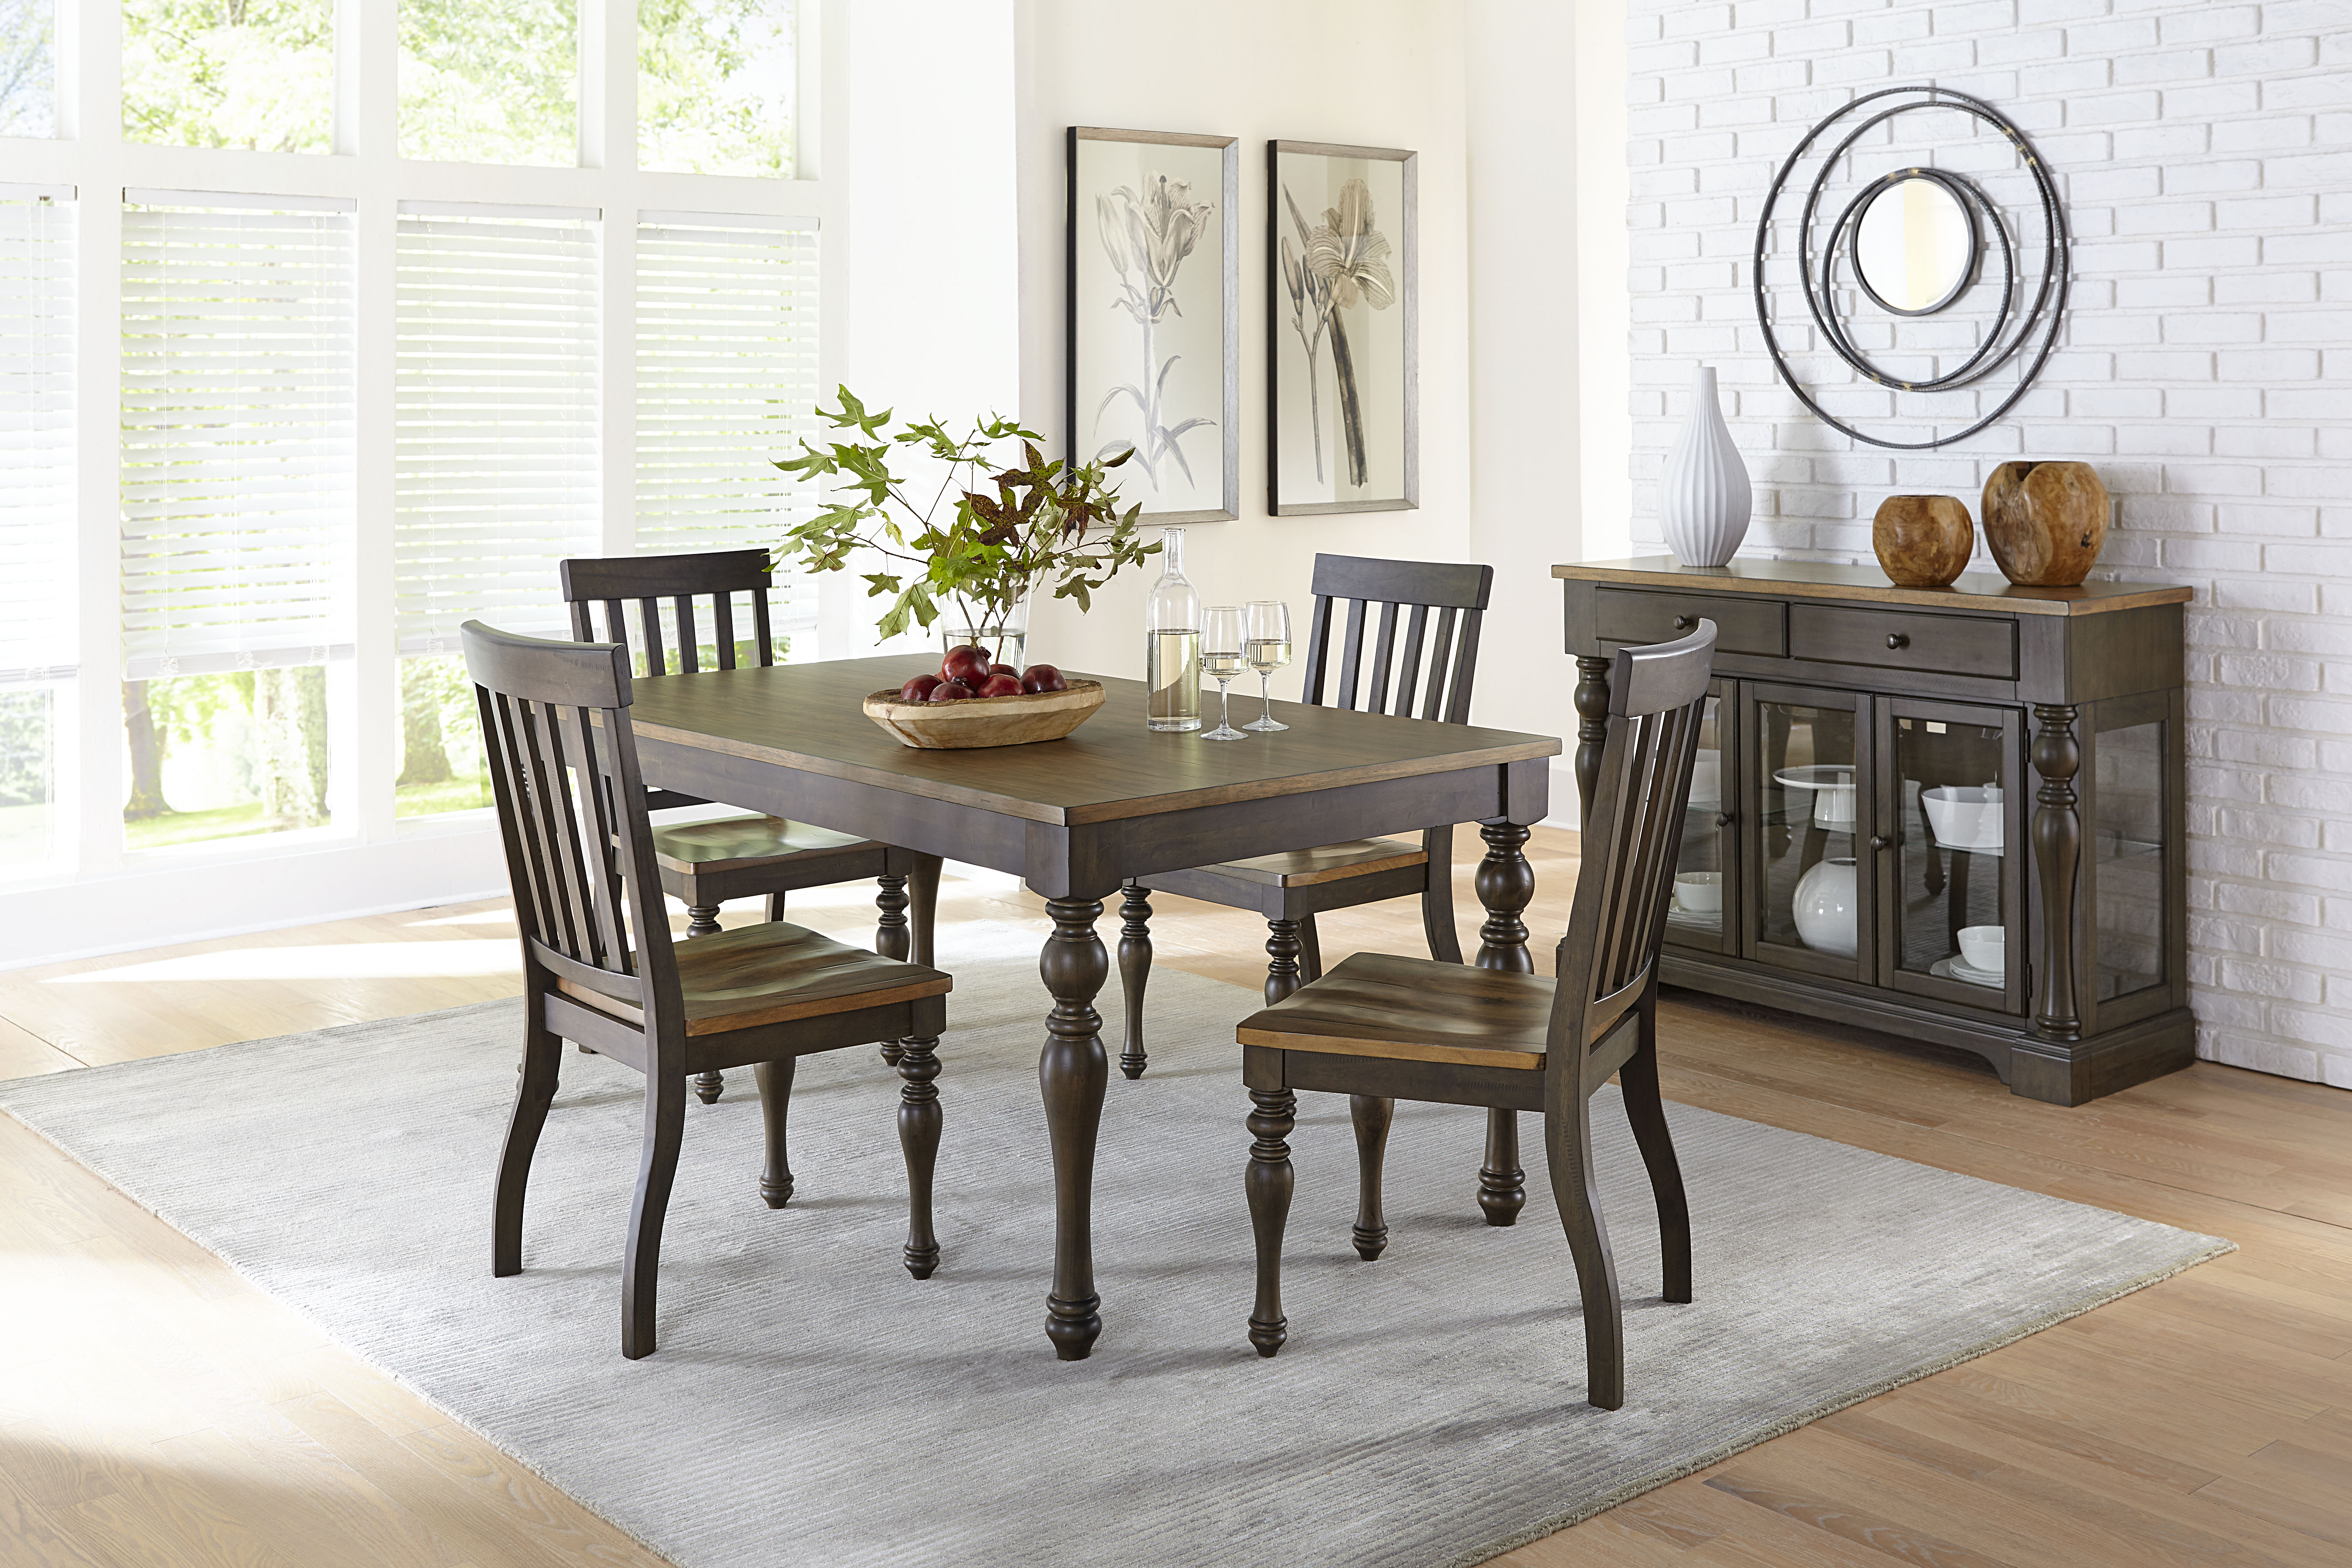 Dunmore 5 piece table American Freight